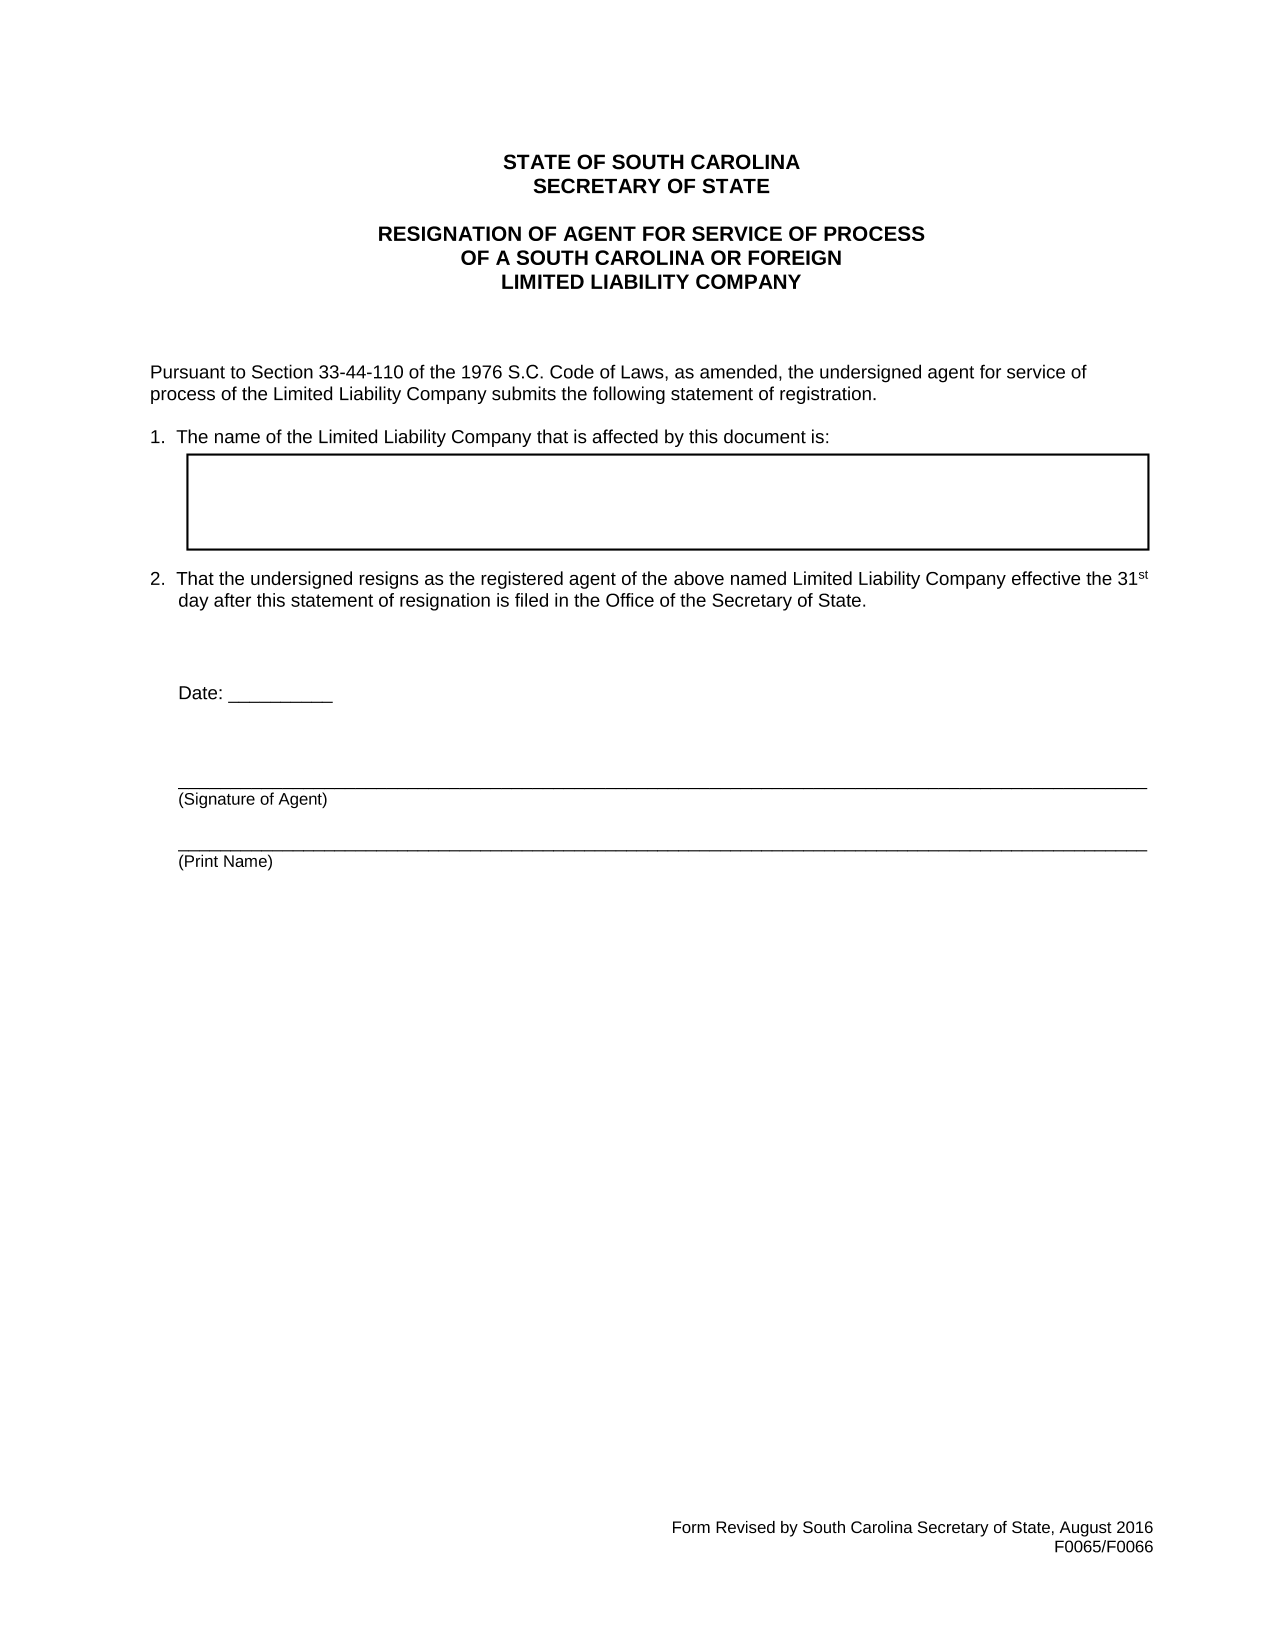 south-carolina-resignation-of-registered-agent-and-discontinuance-of-registered-office